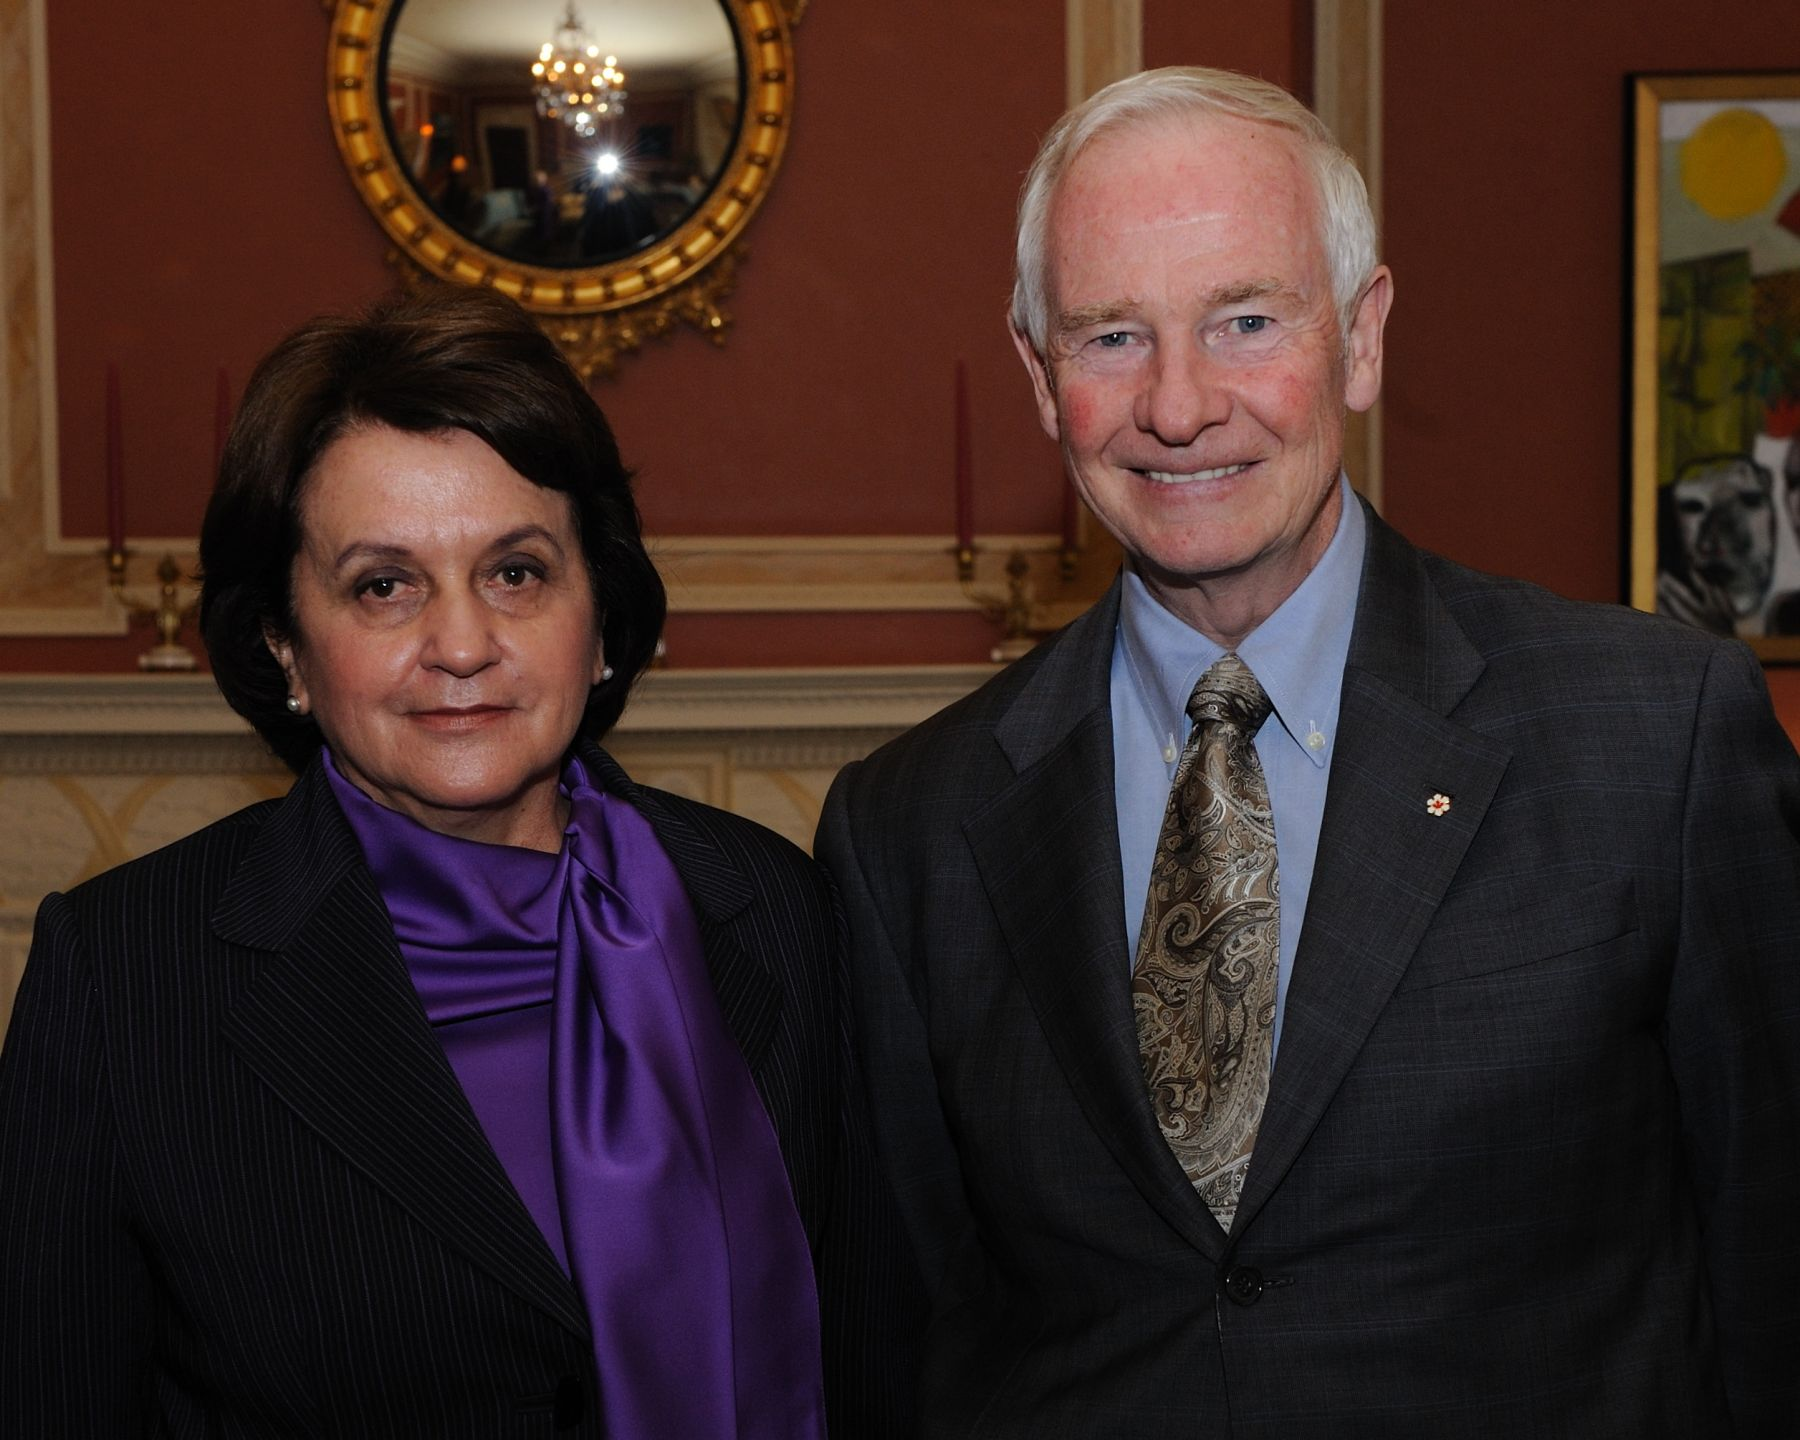 The Governor General received the credentials of Her Excellency Clemencia Forero Ucrós, Ambassador of the Republic of Colombia.